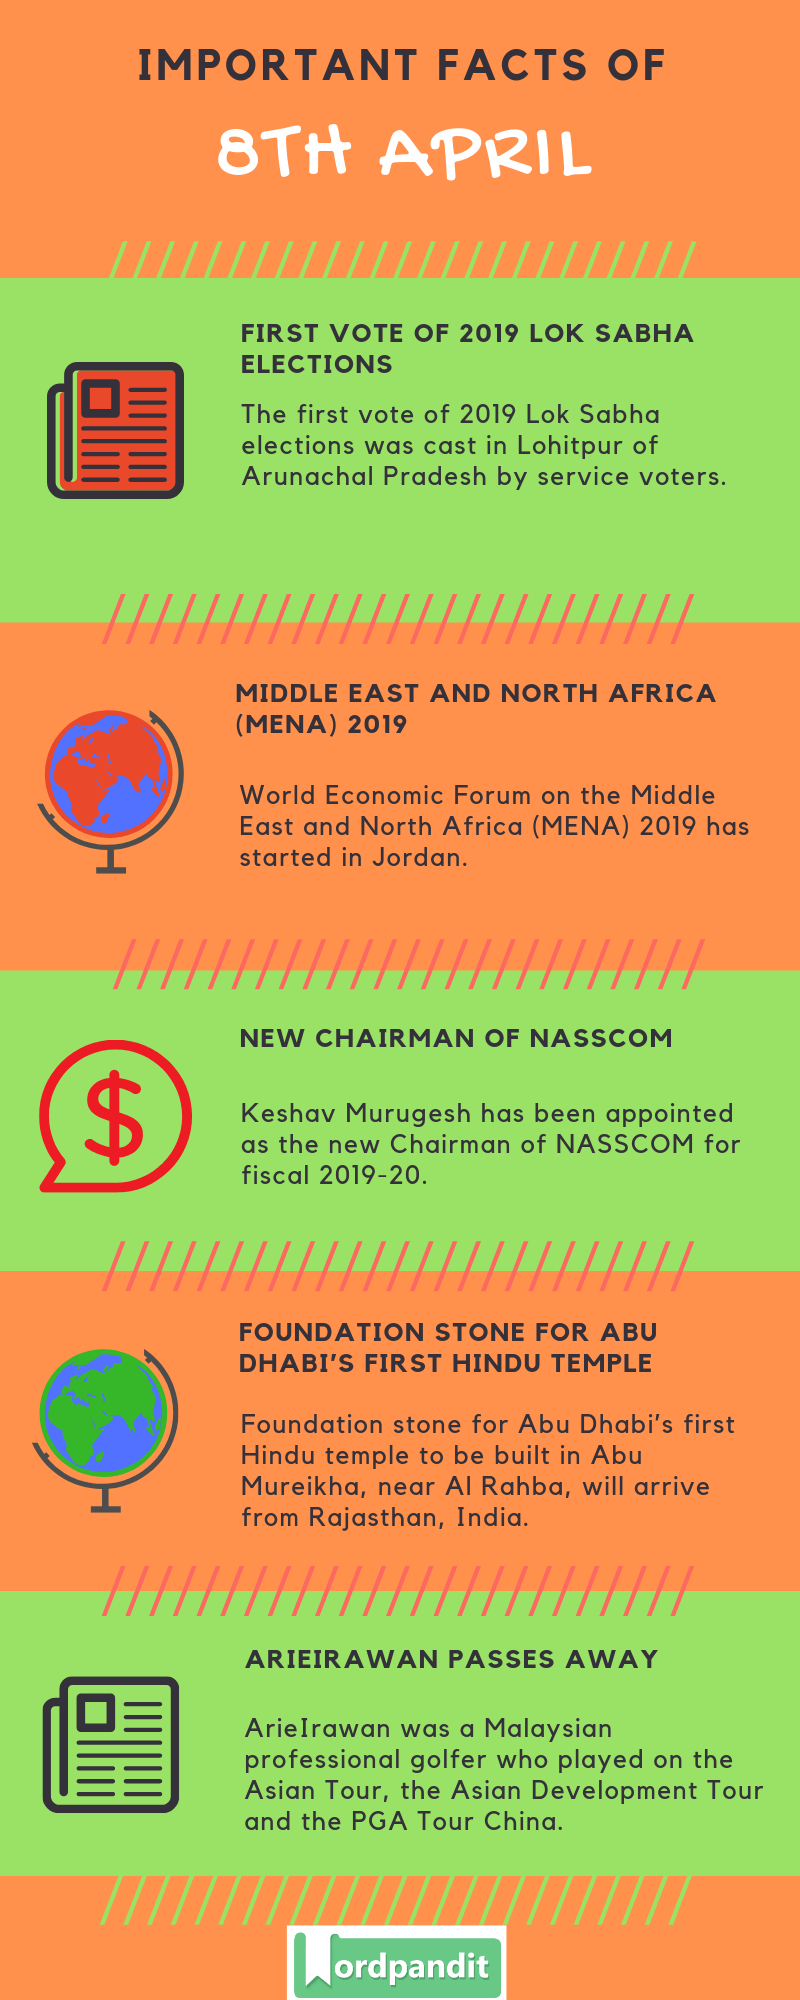 Daily Current Affairs 8 April 2019 Current Affairs Quiz 8 April 2019 Current Affairs Infographic